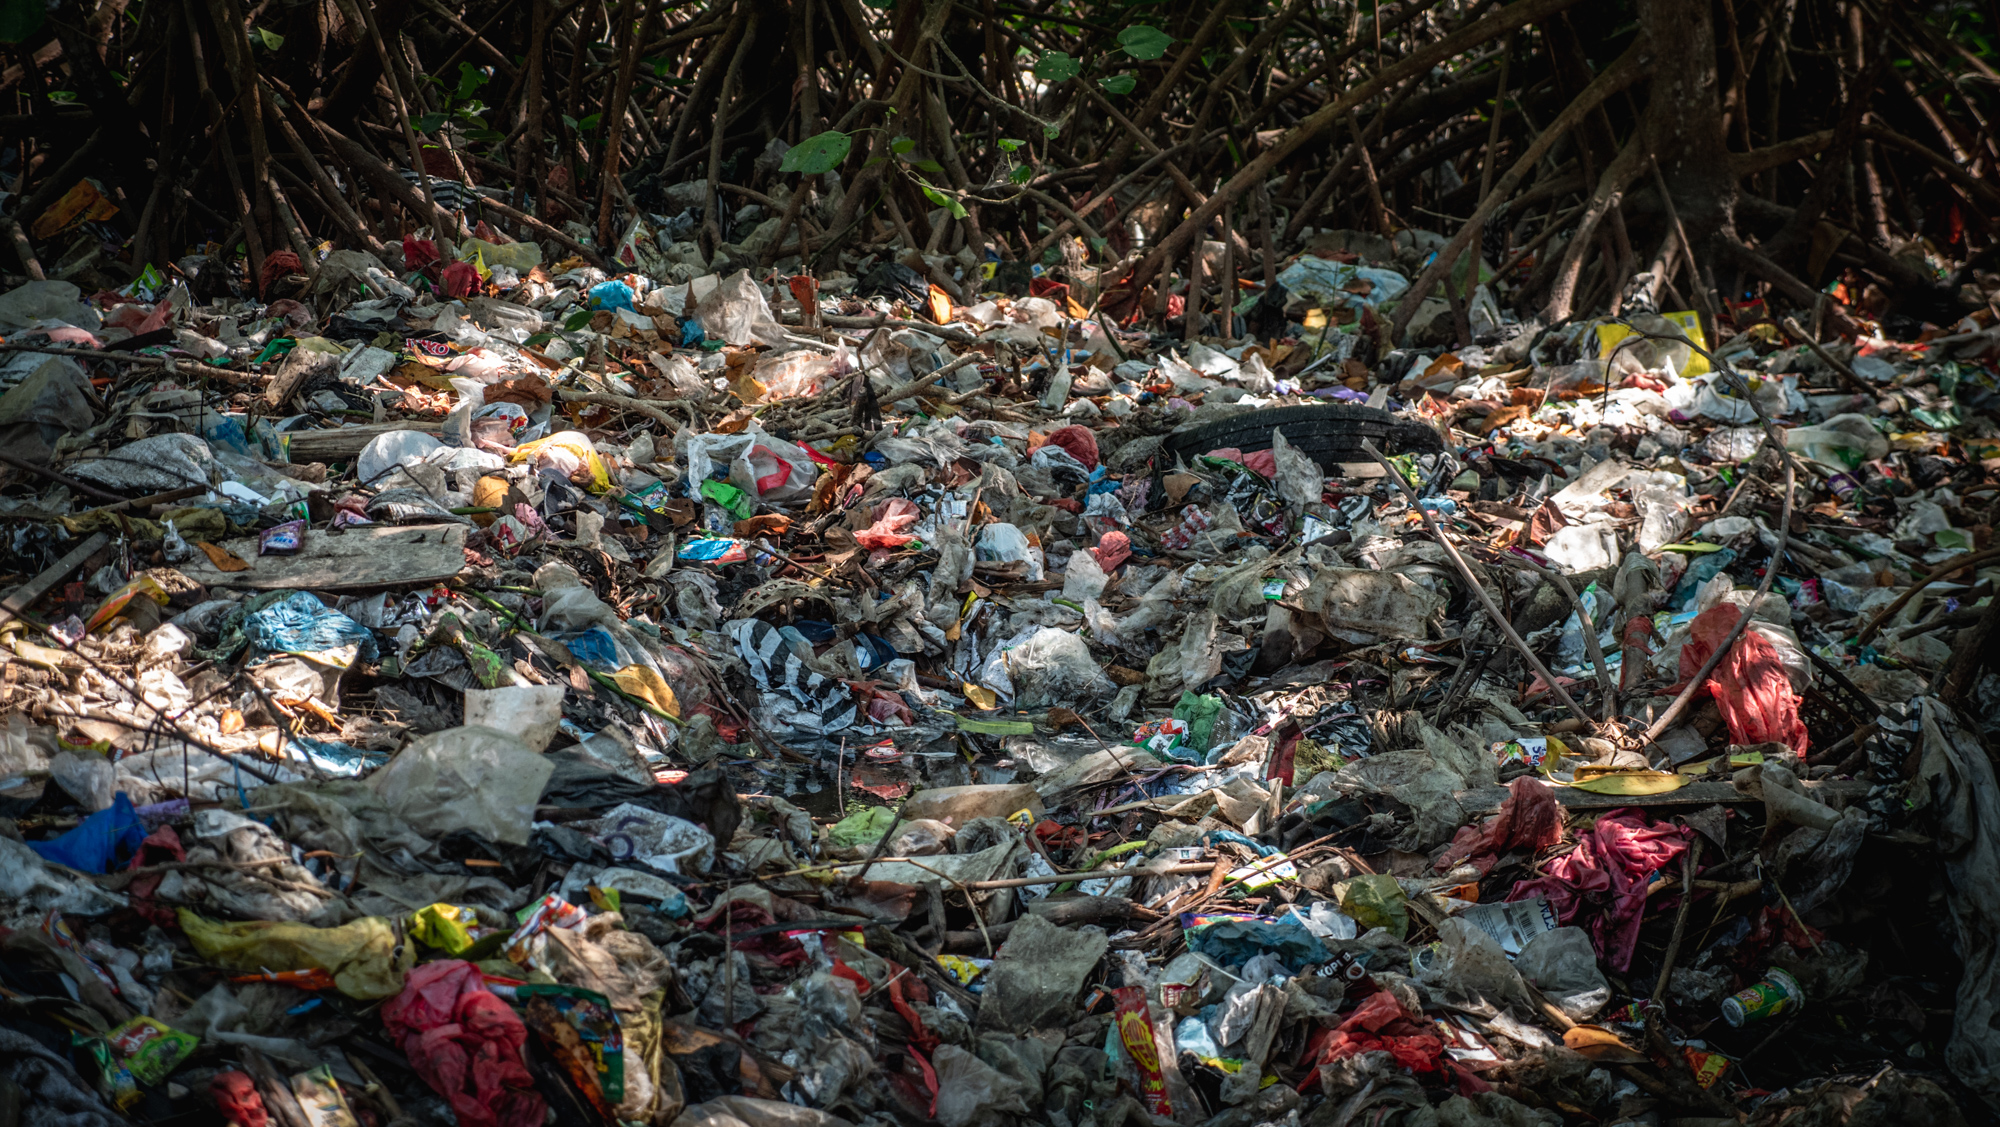 Creating value in plastic through digital technology in Indonesia: Comprehensive sustainability in plastic waste prevention and recycling